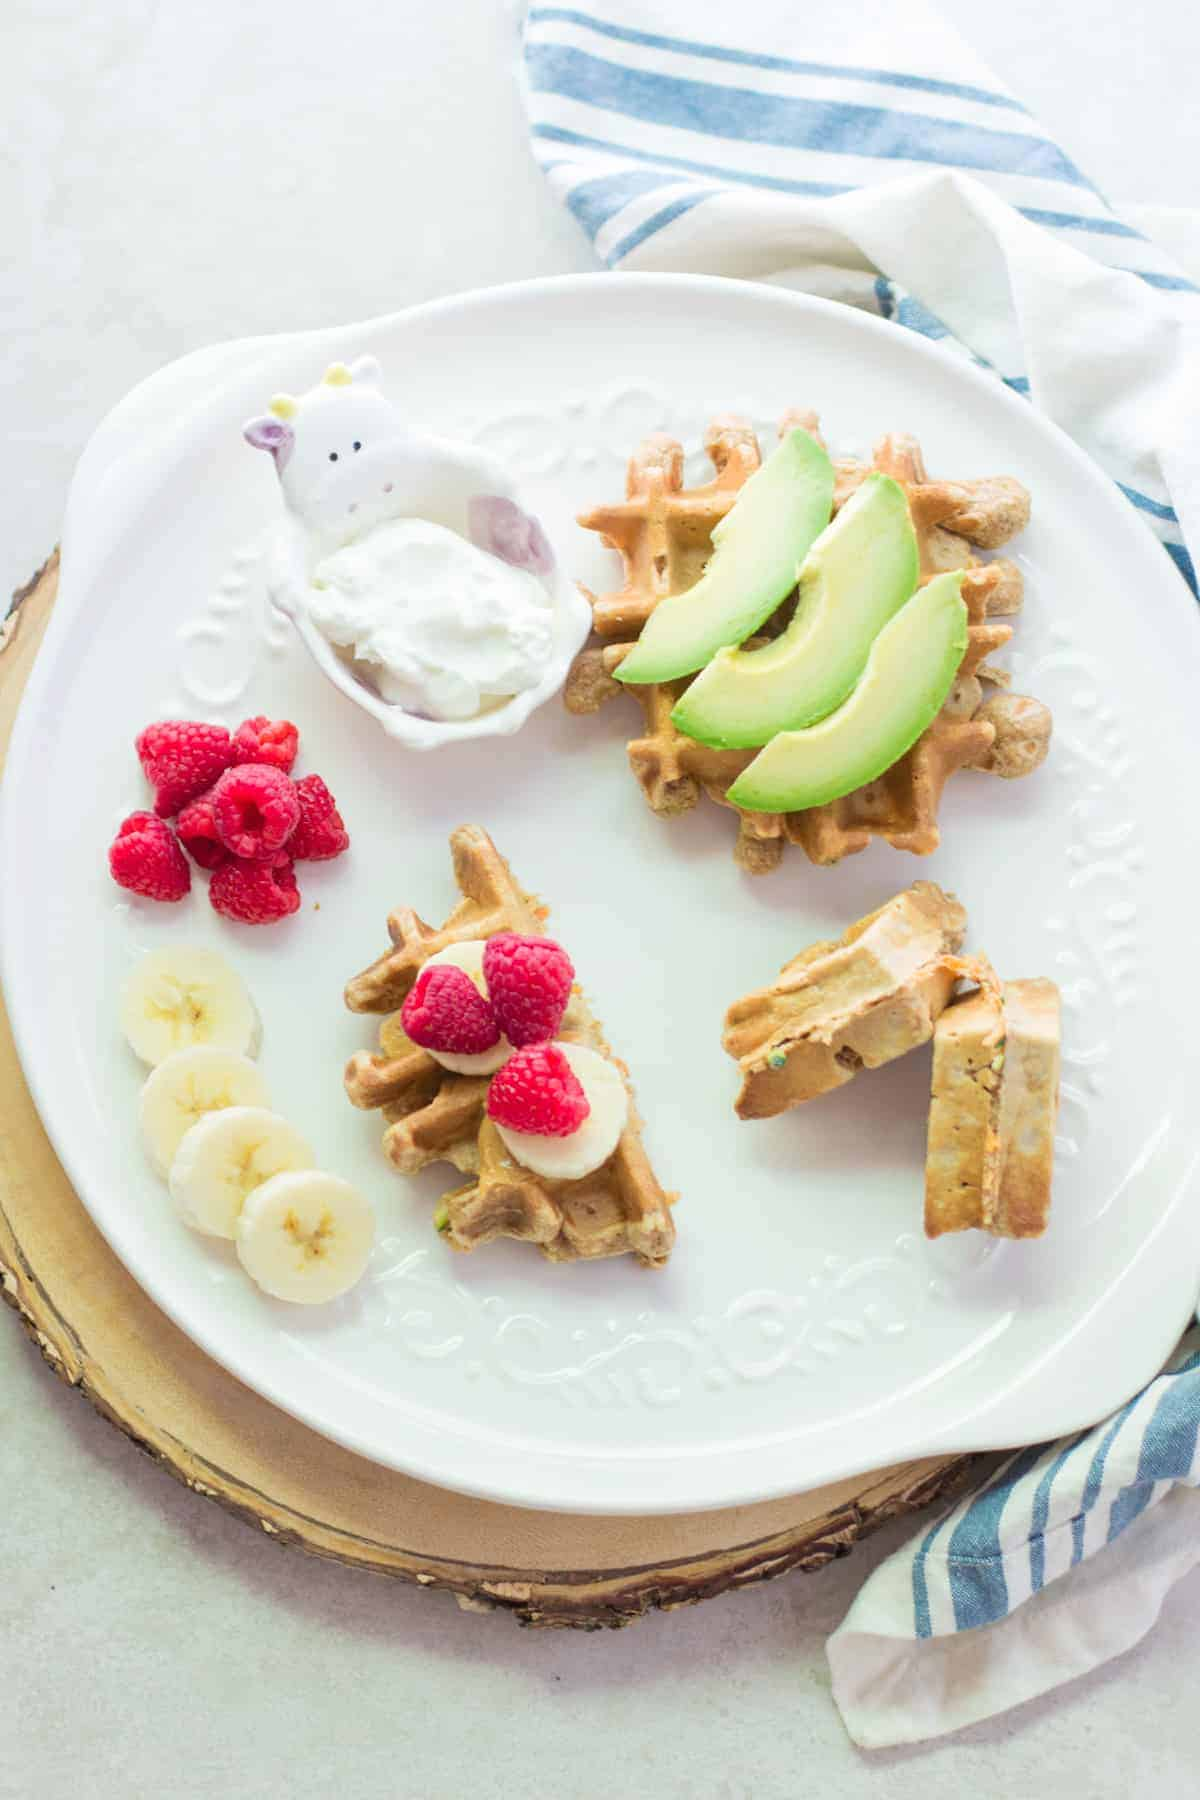 a waffle topped with avocado slices, waffle half with banana and raspberries and the other half folded to show thickness.